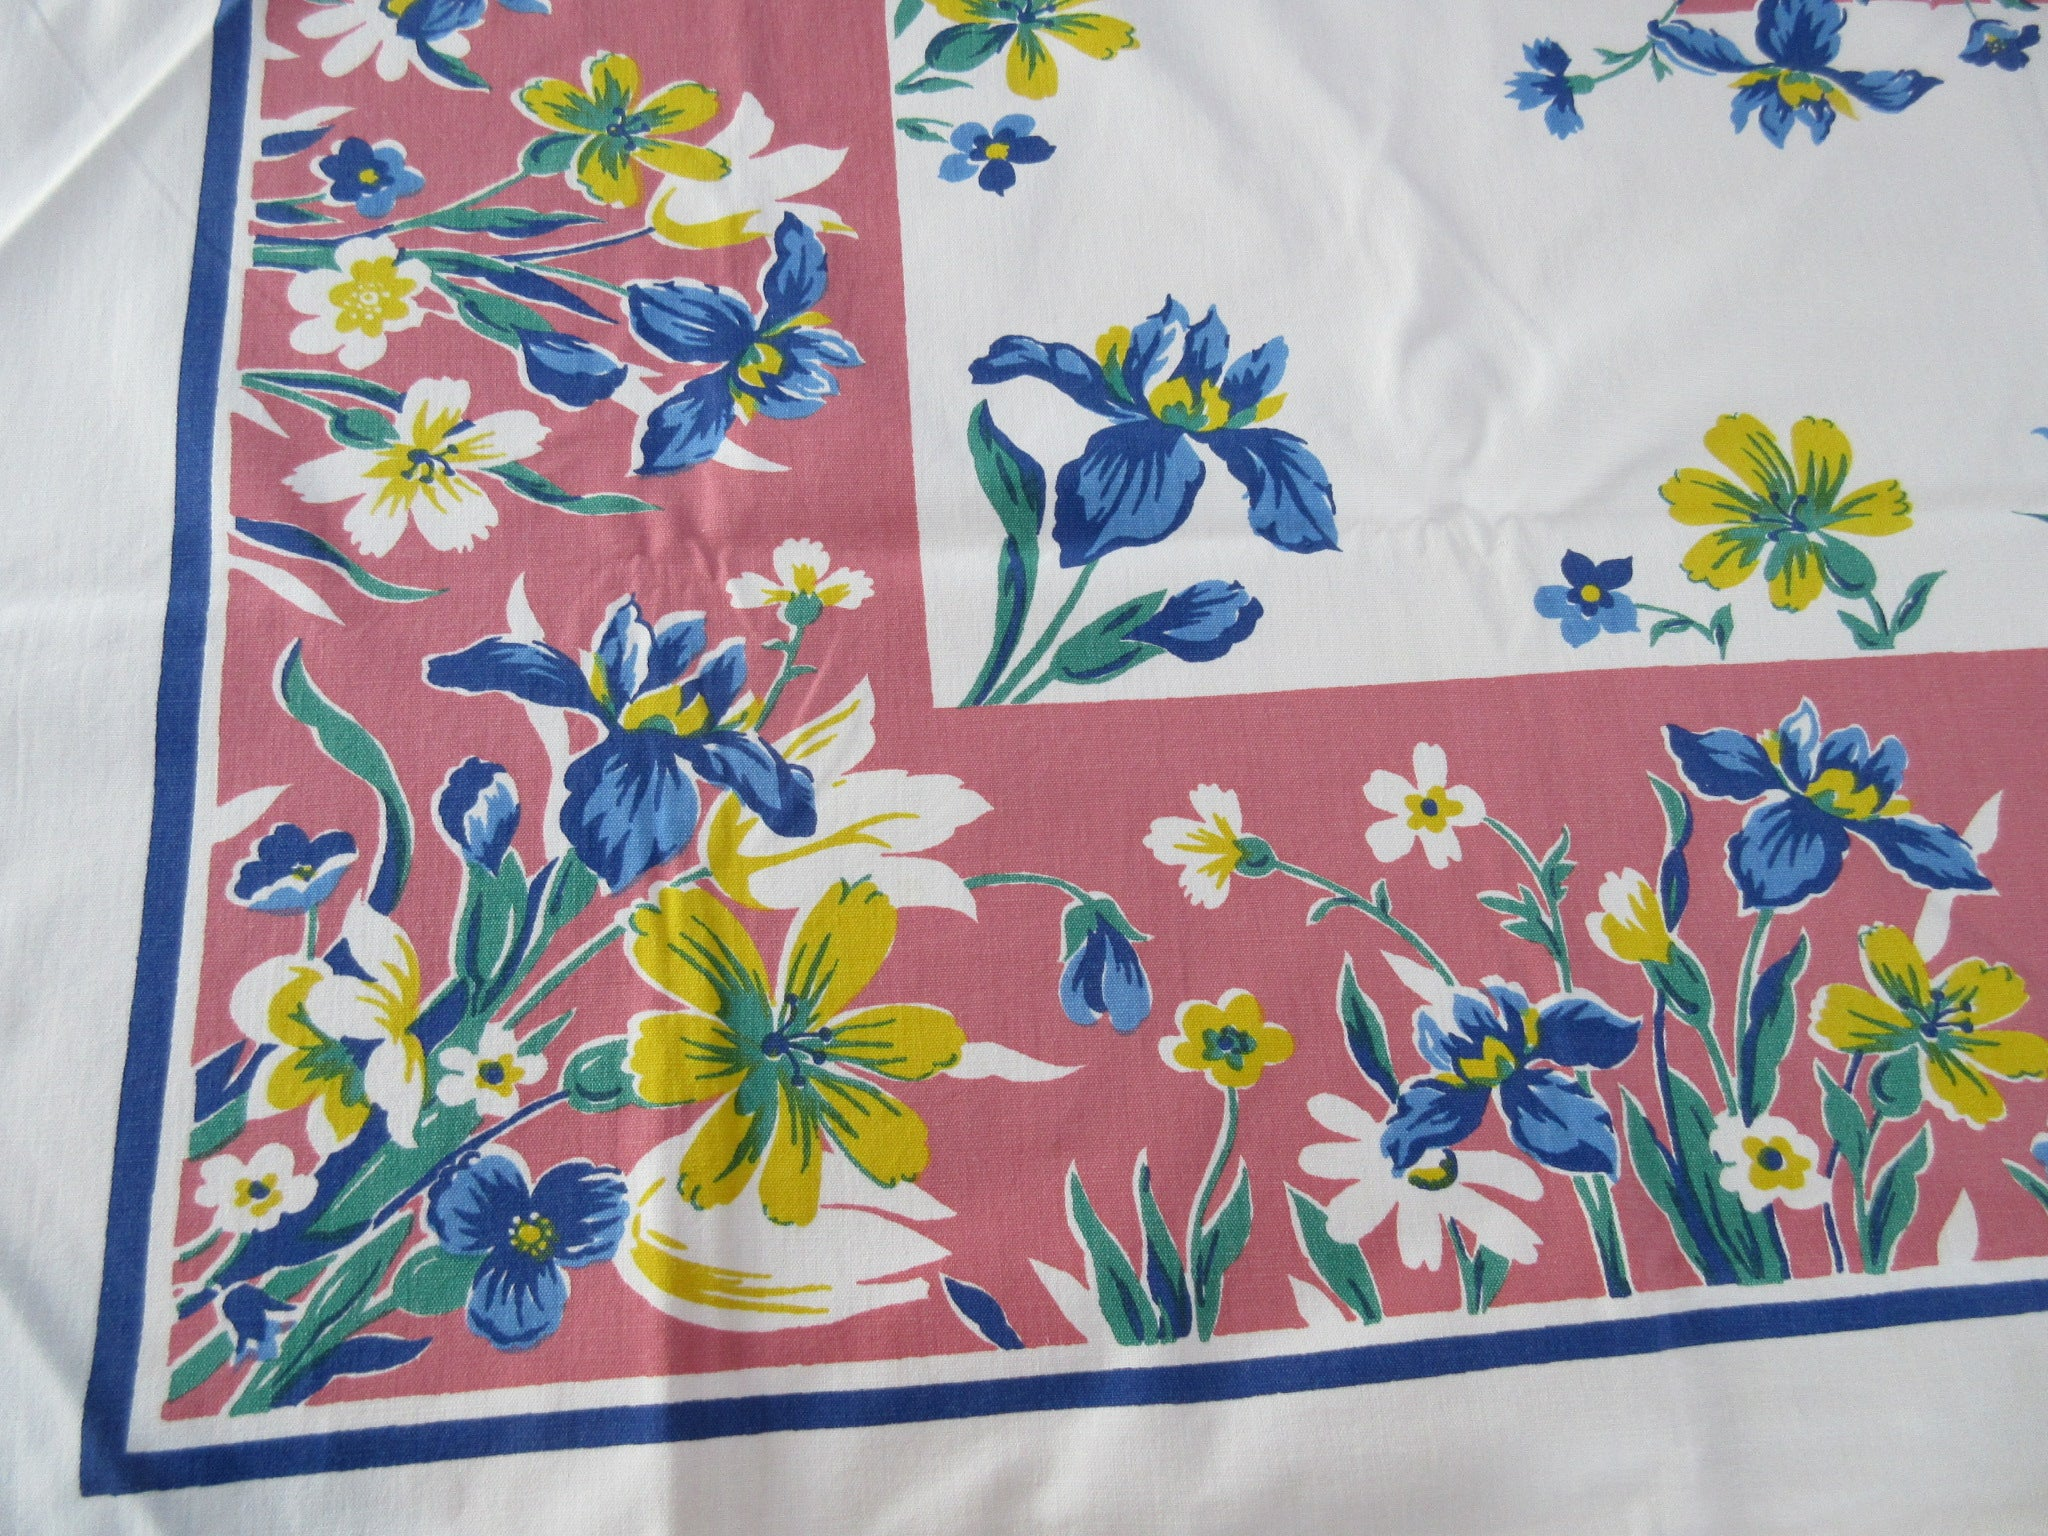 Bright Blue Iris on Pink Floral Vintage Printed Tablecloth (52 X 45)